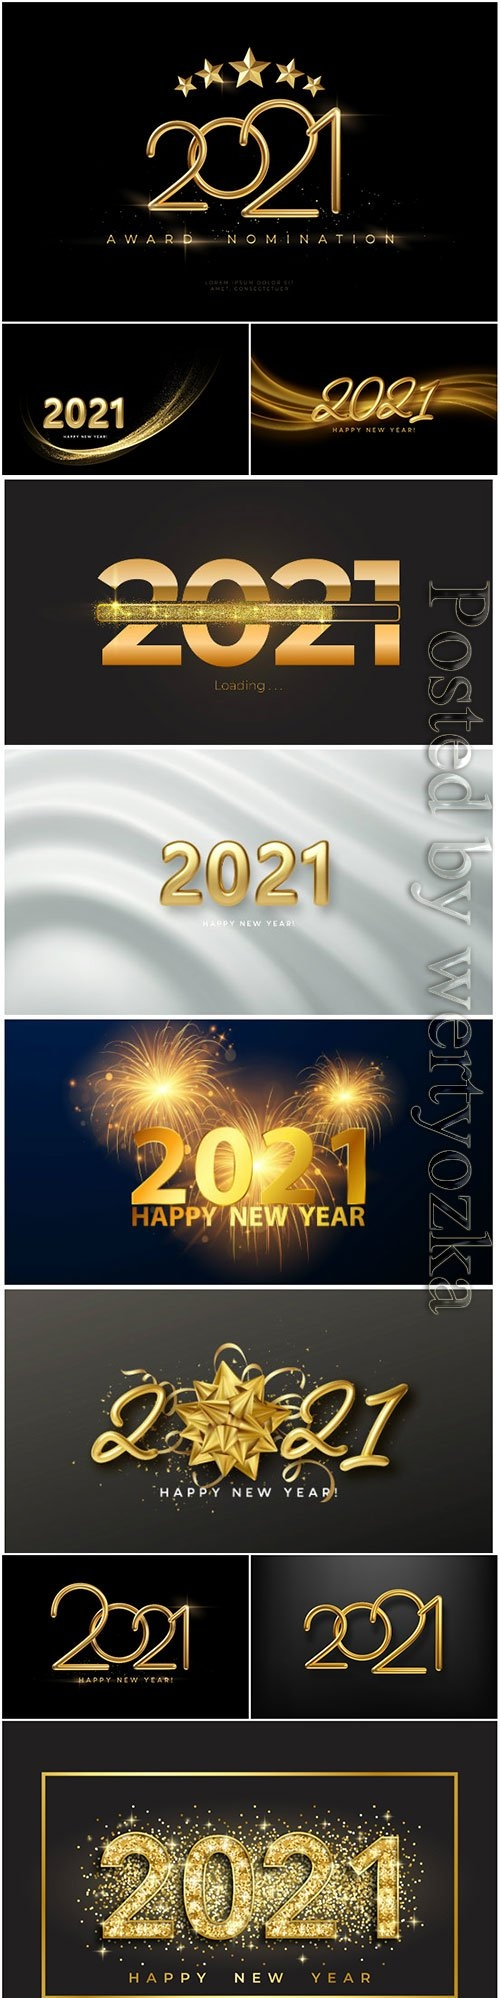 New Year 2021 realistic golden 3d inscription on the background